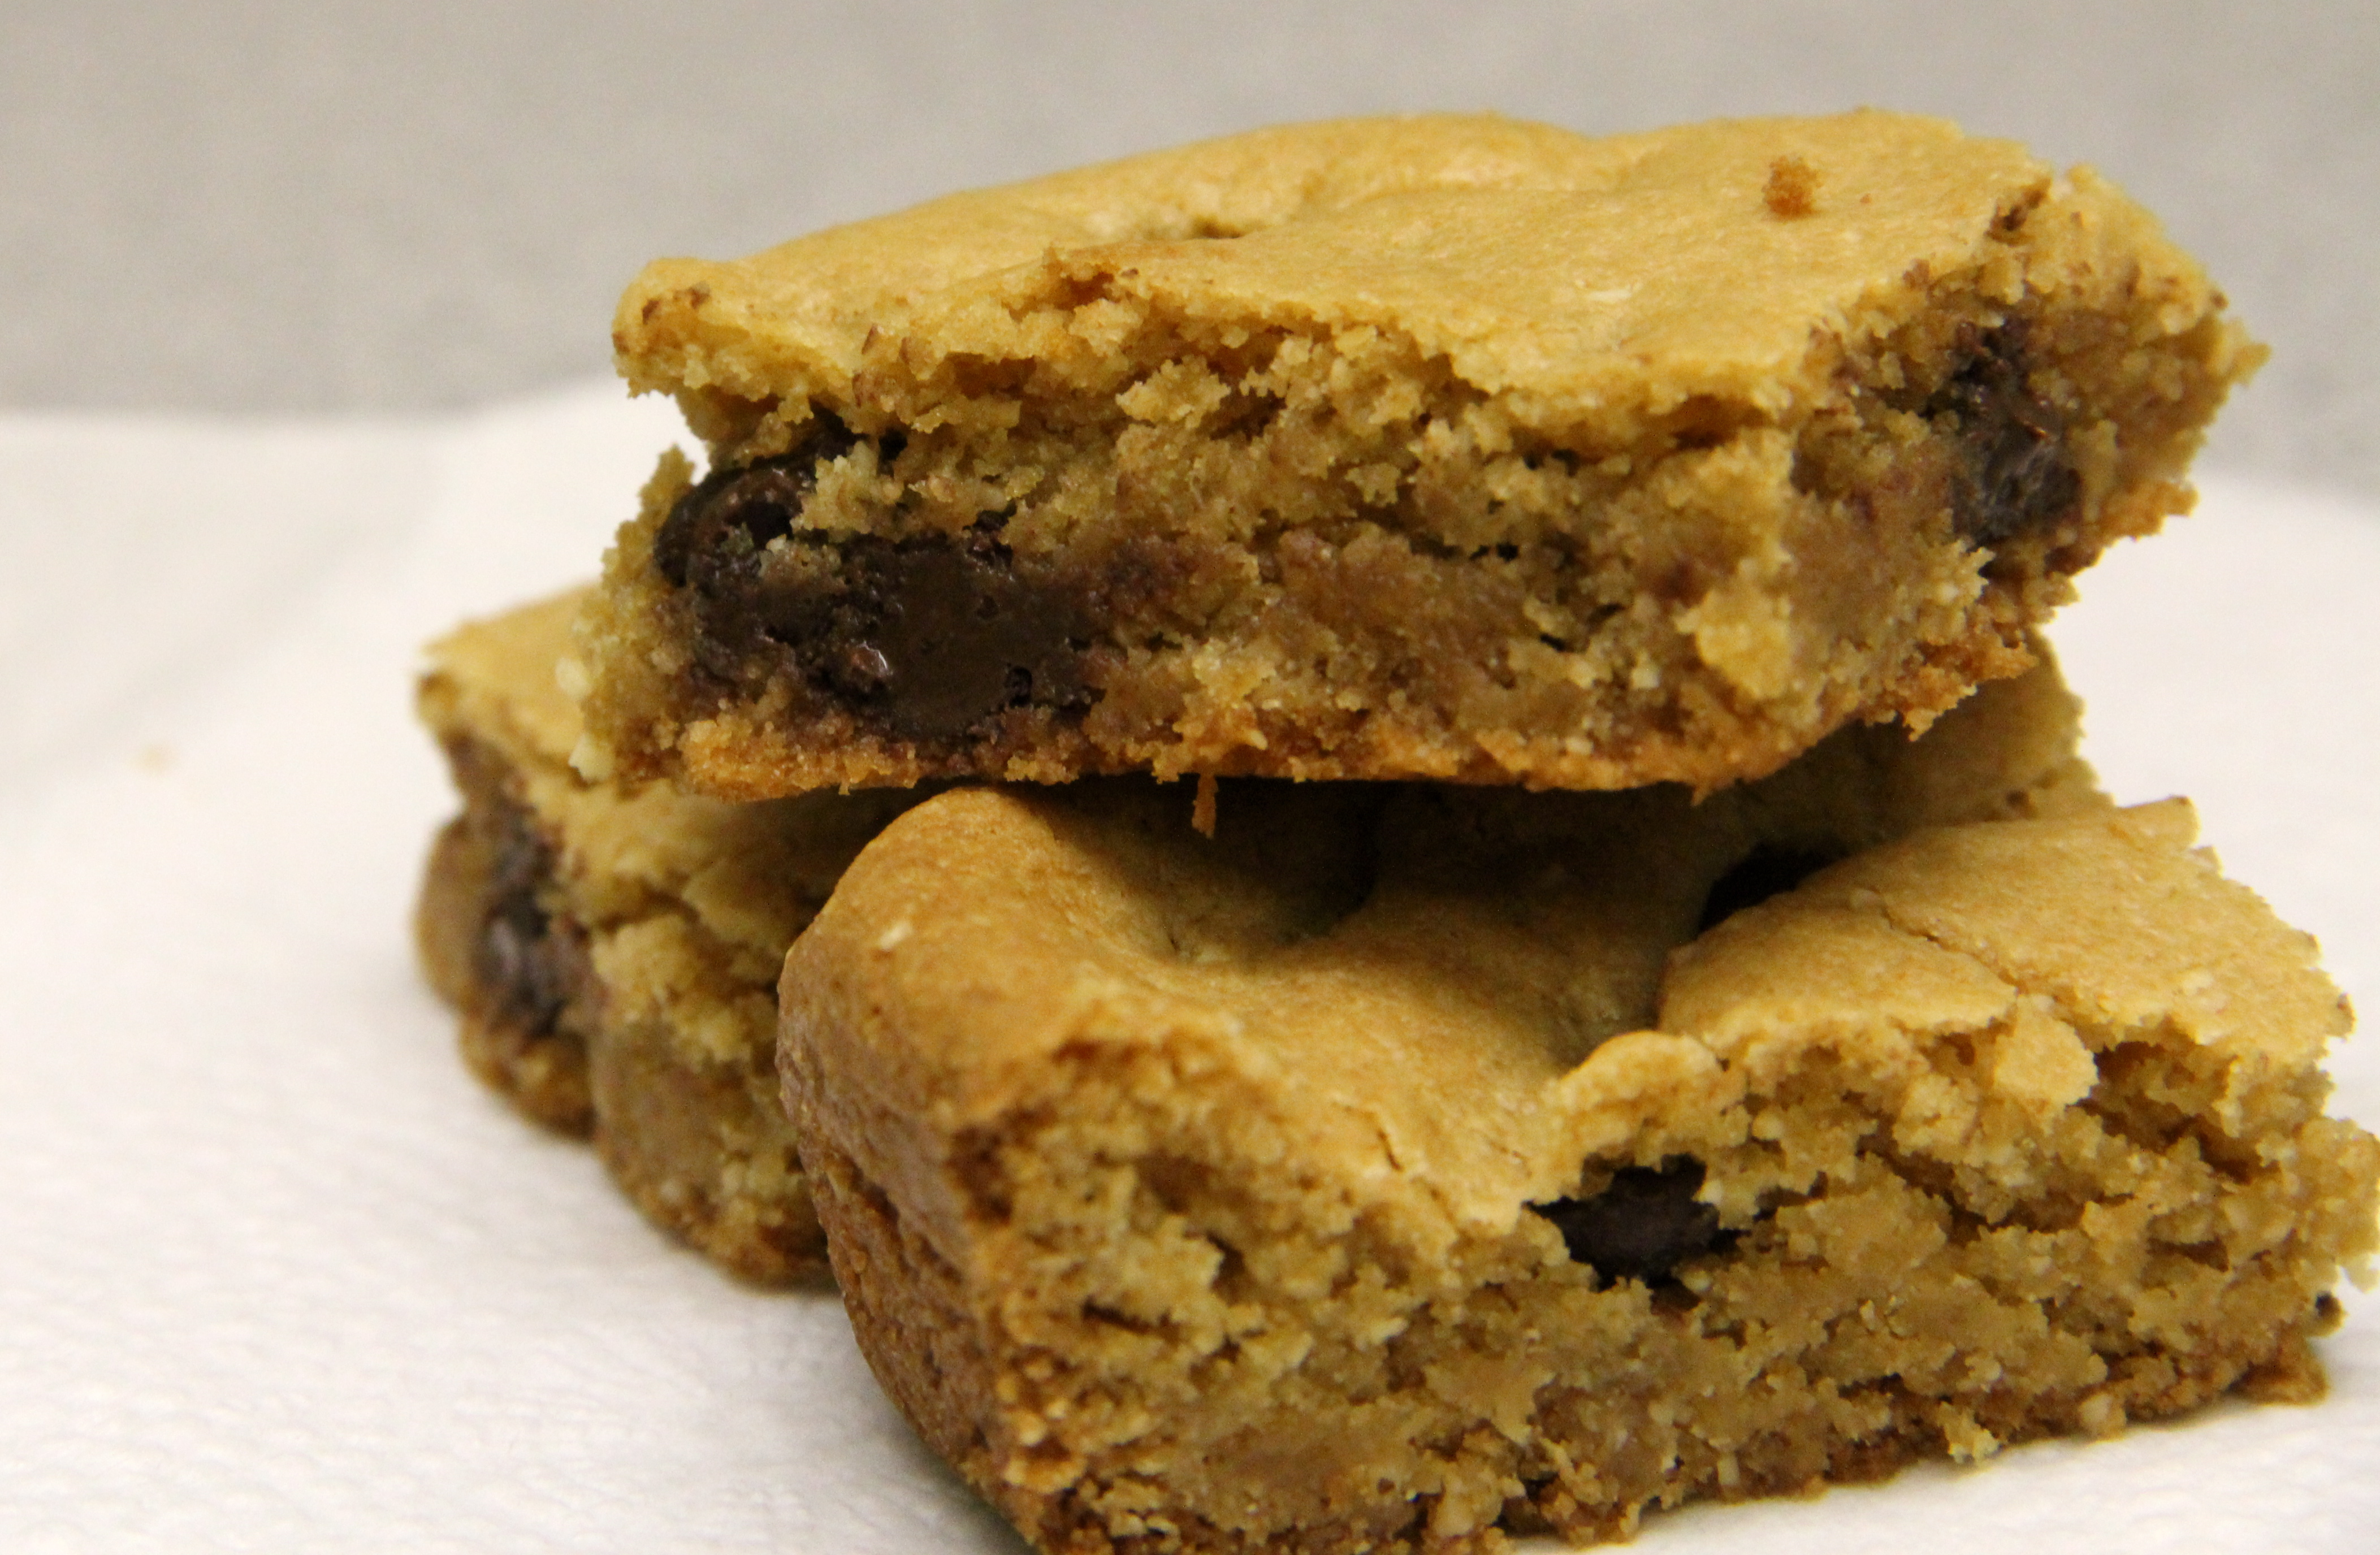 Chocolate Peanut Butter Bars Chocolate Chip Peanut Butter